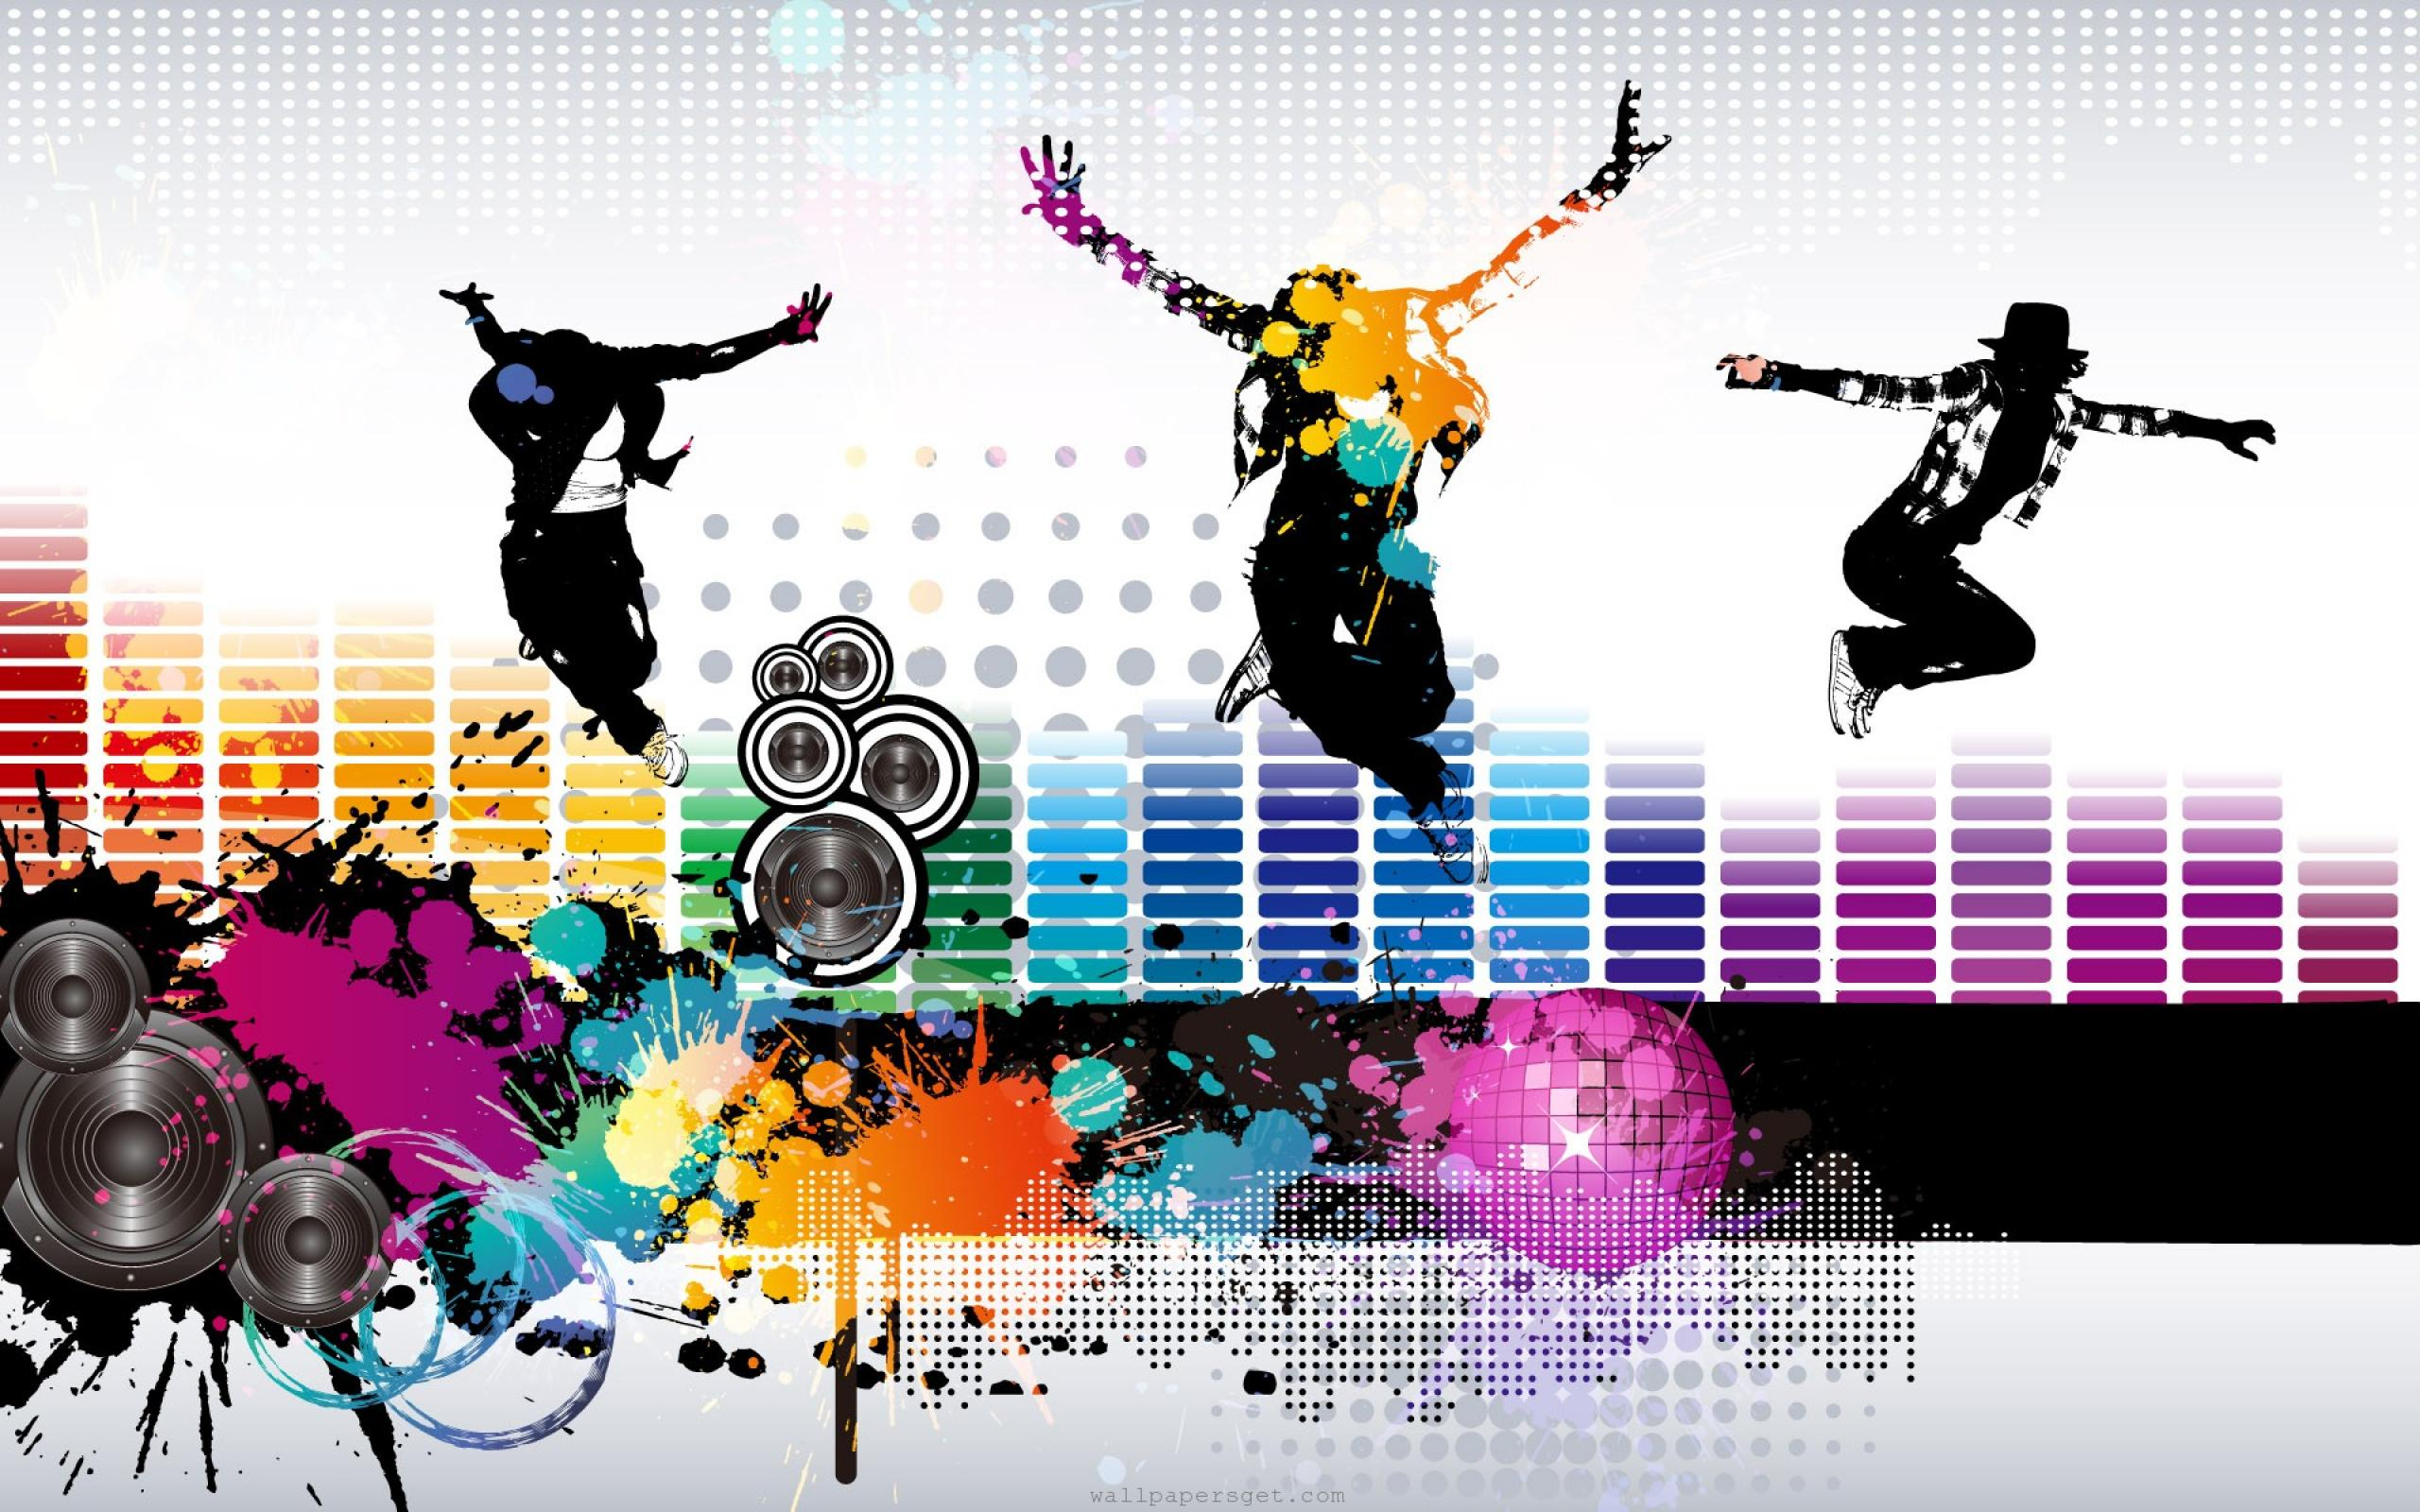 Best Music Background - Wallpaper, High Definition, High Quality ...: www.bwallpapers.com/wallpaper/best-music-background-4743